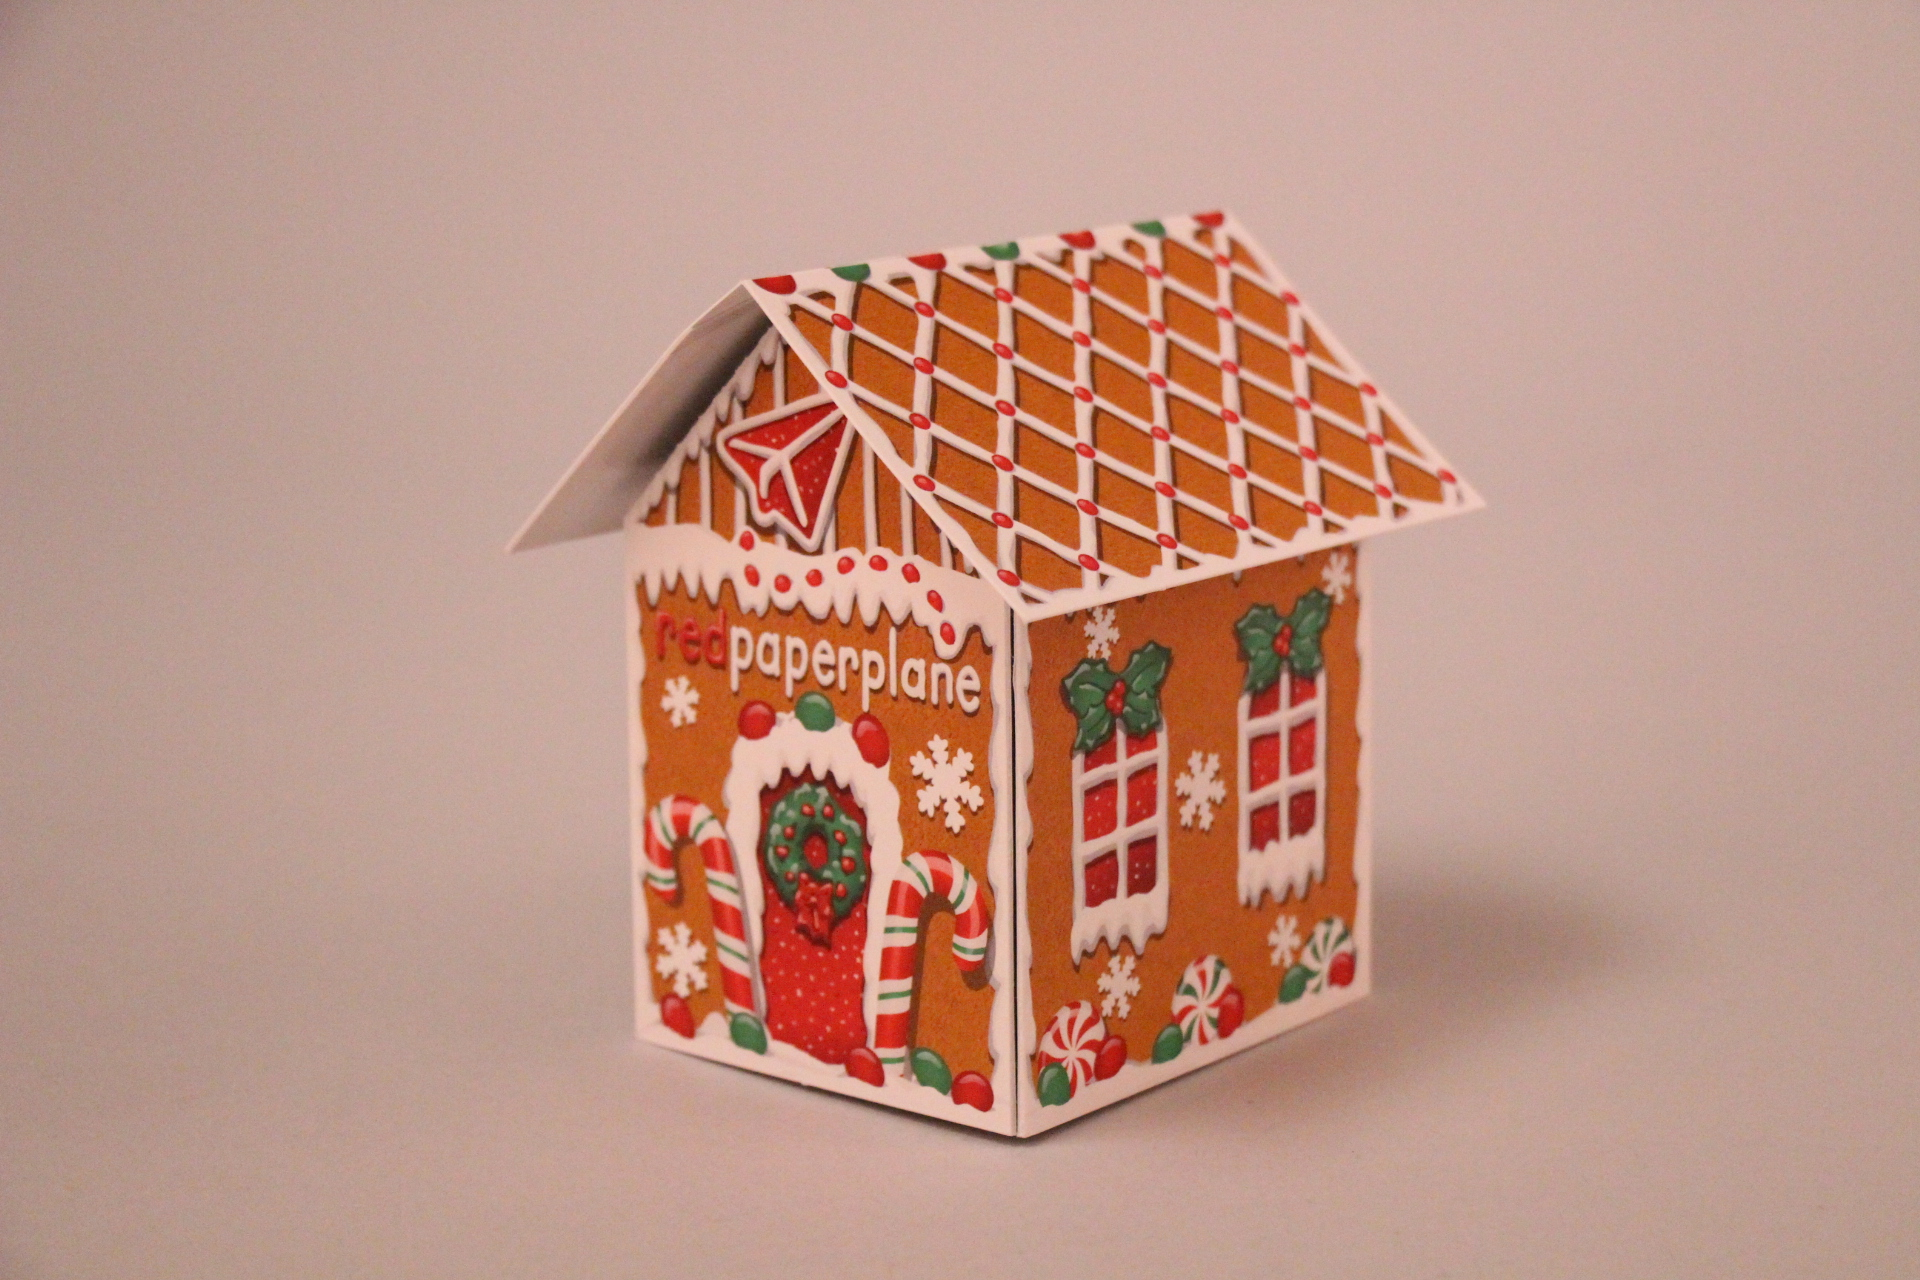 Red Paper Plane Pop-up House Format